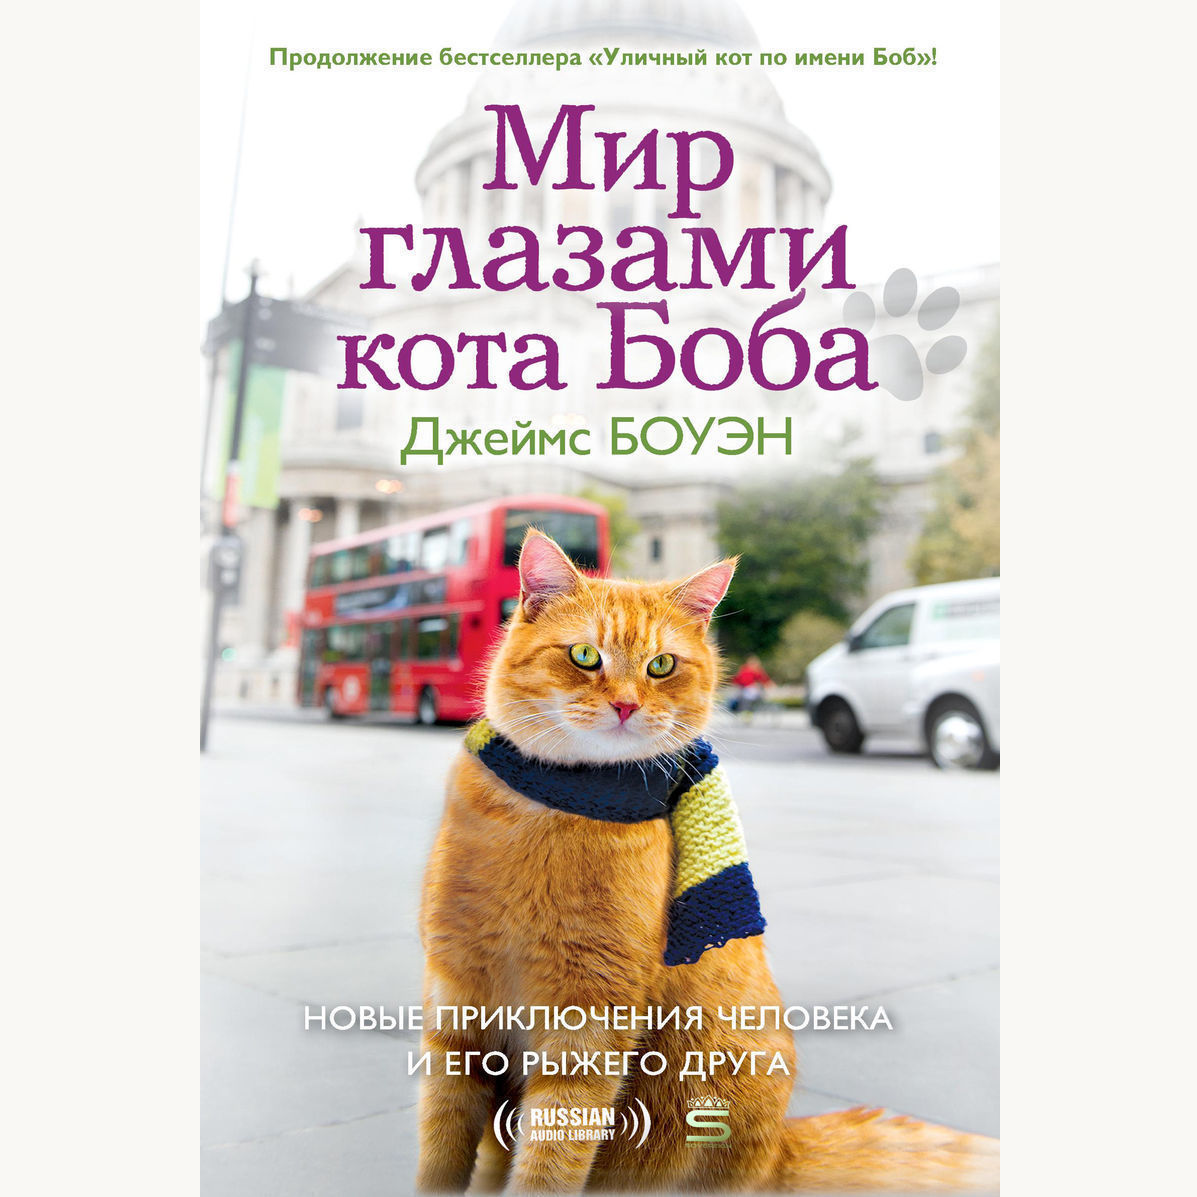 Printable Мир глазами кота Боба: The Further Adventures of One Man and His Street-wise Cat [Russian Edition] Audiobook Cover Art